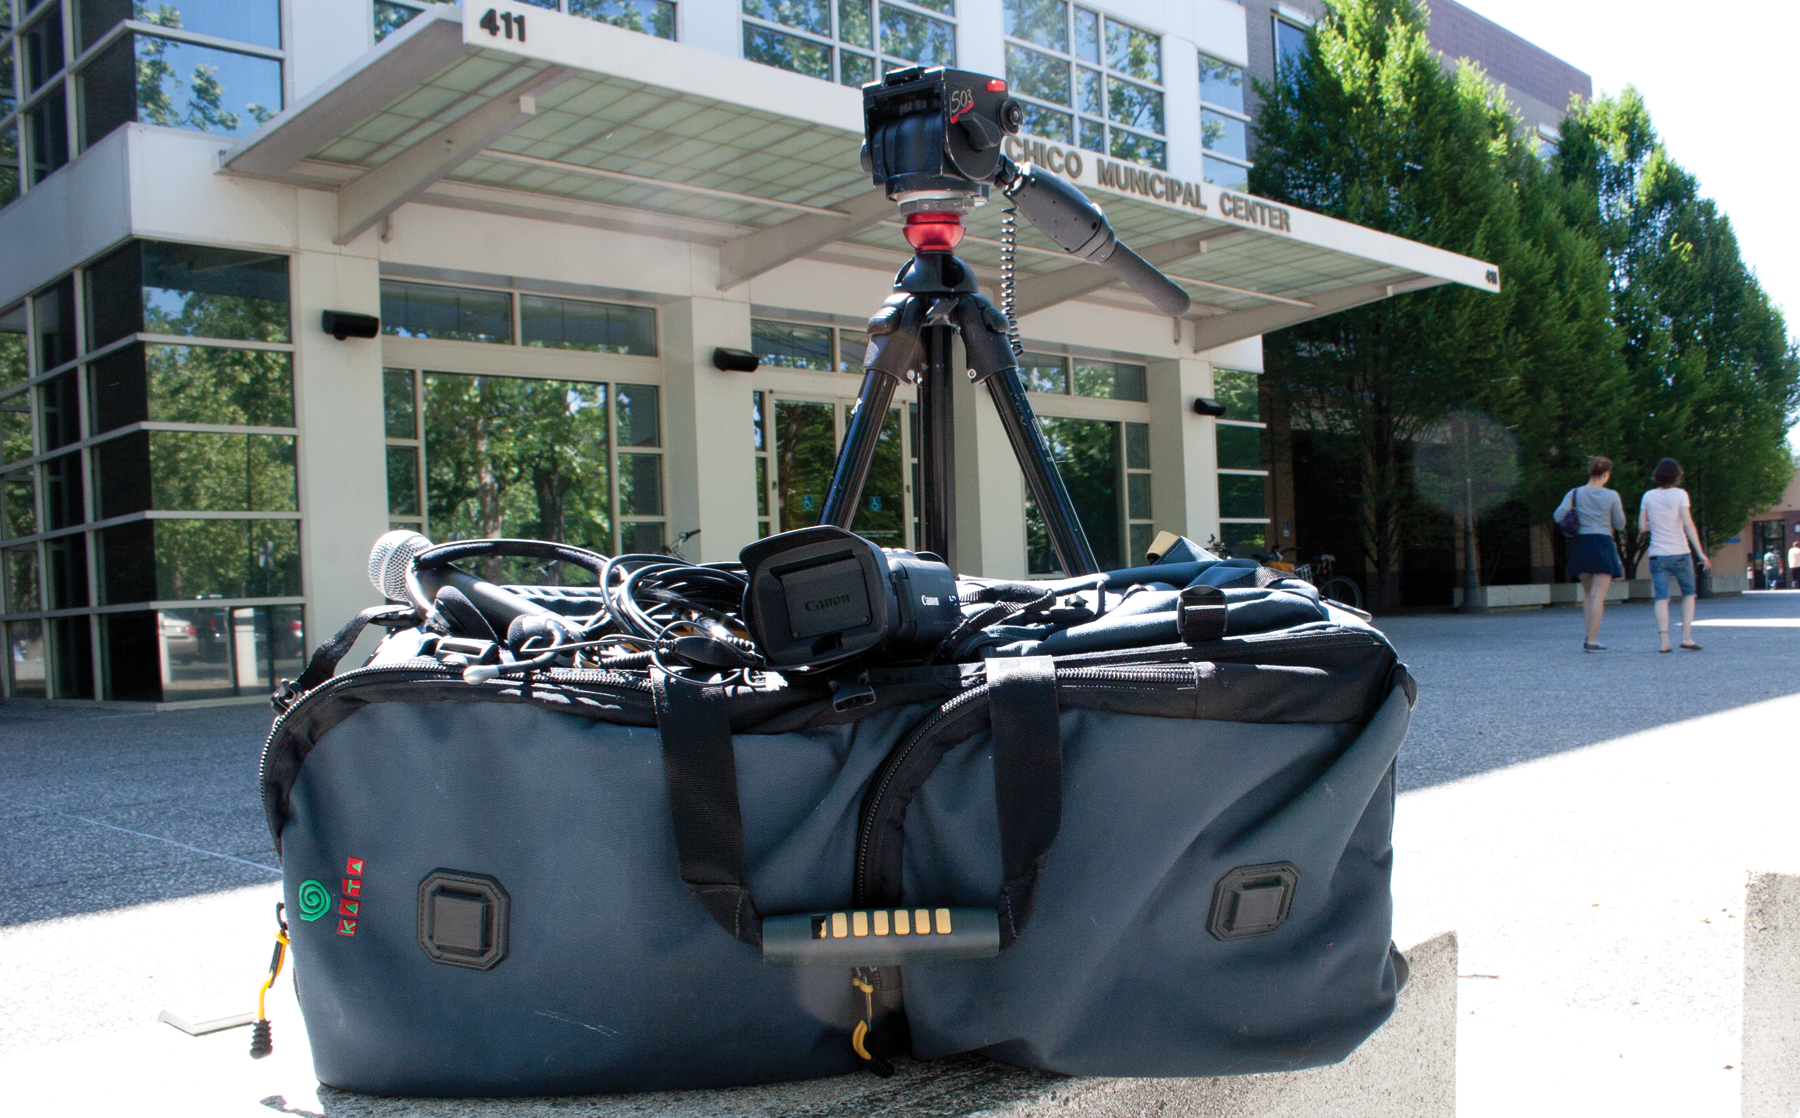 2 photos of gear bag with video gear on location at City Hall and a baseball game